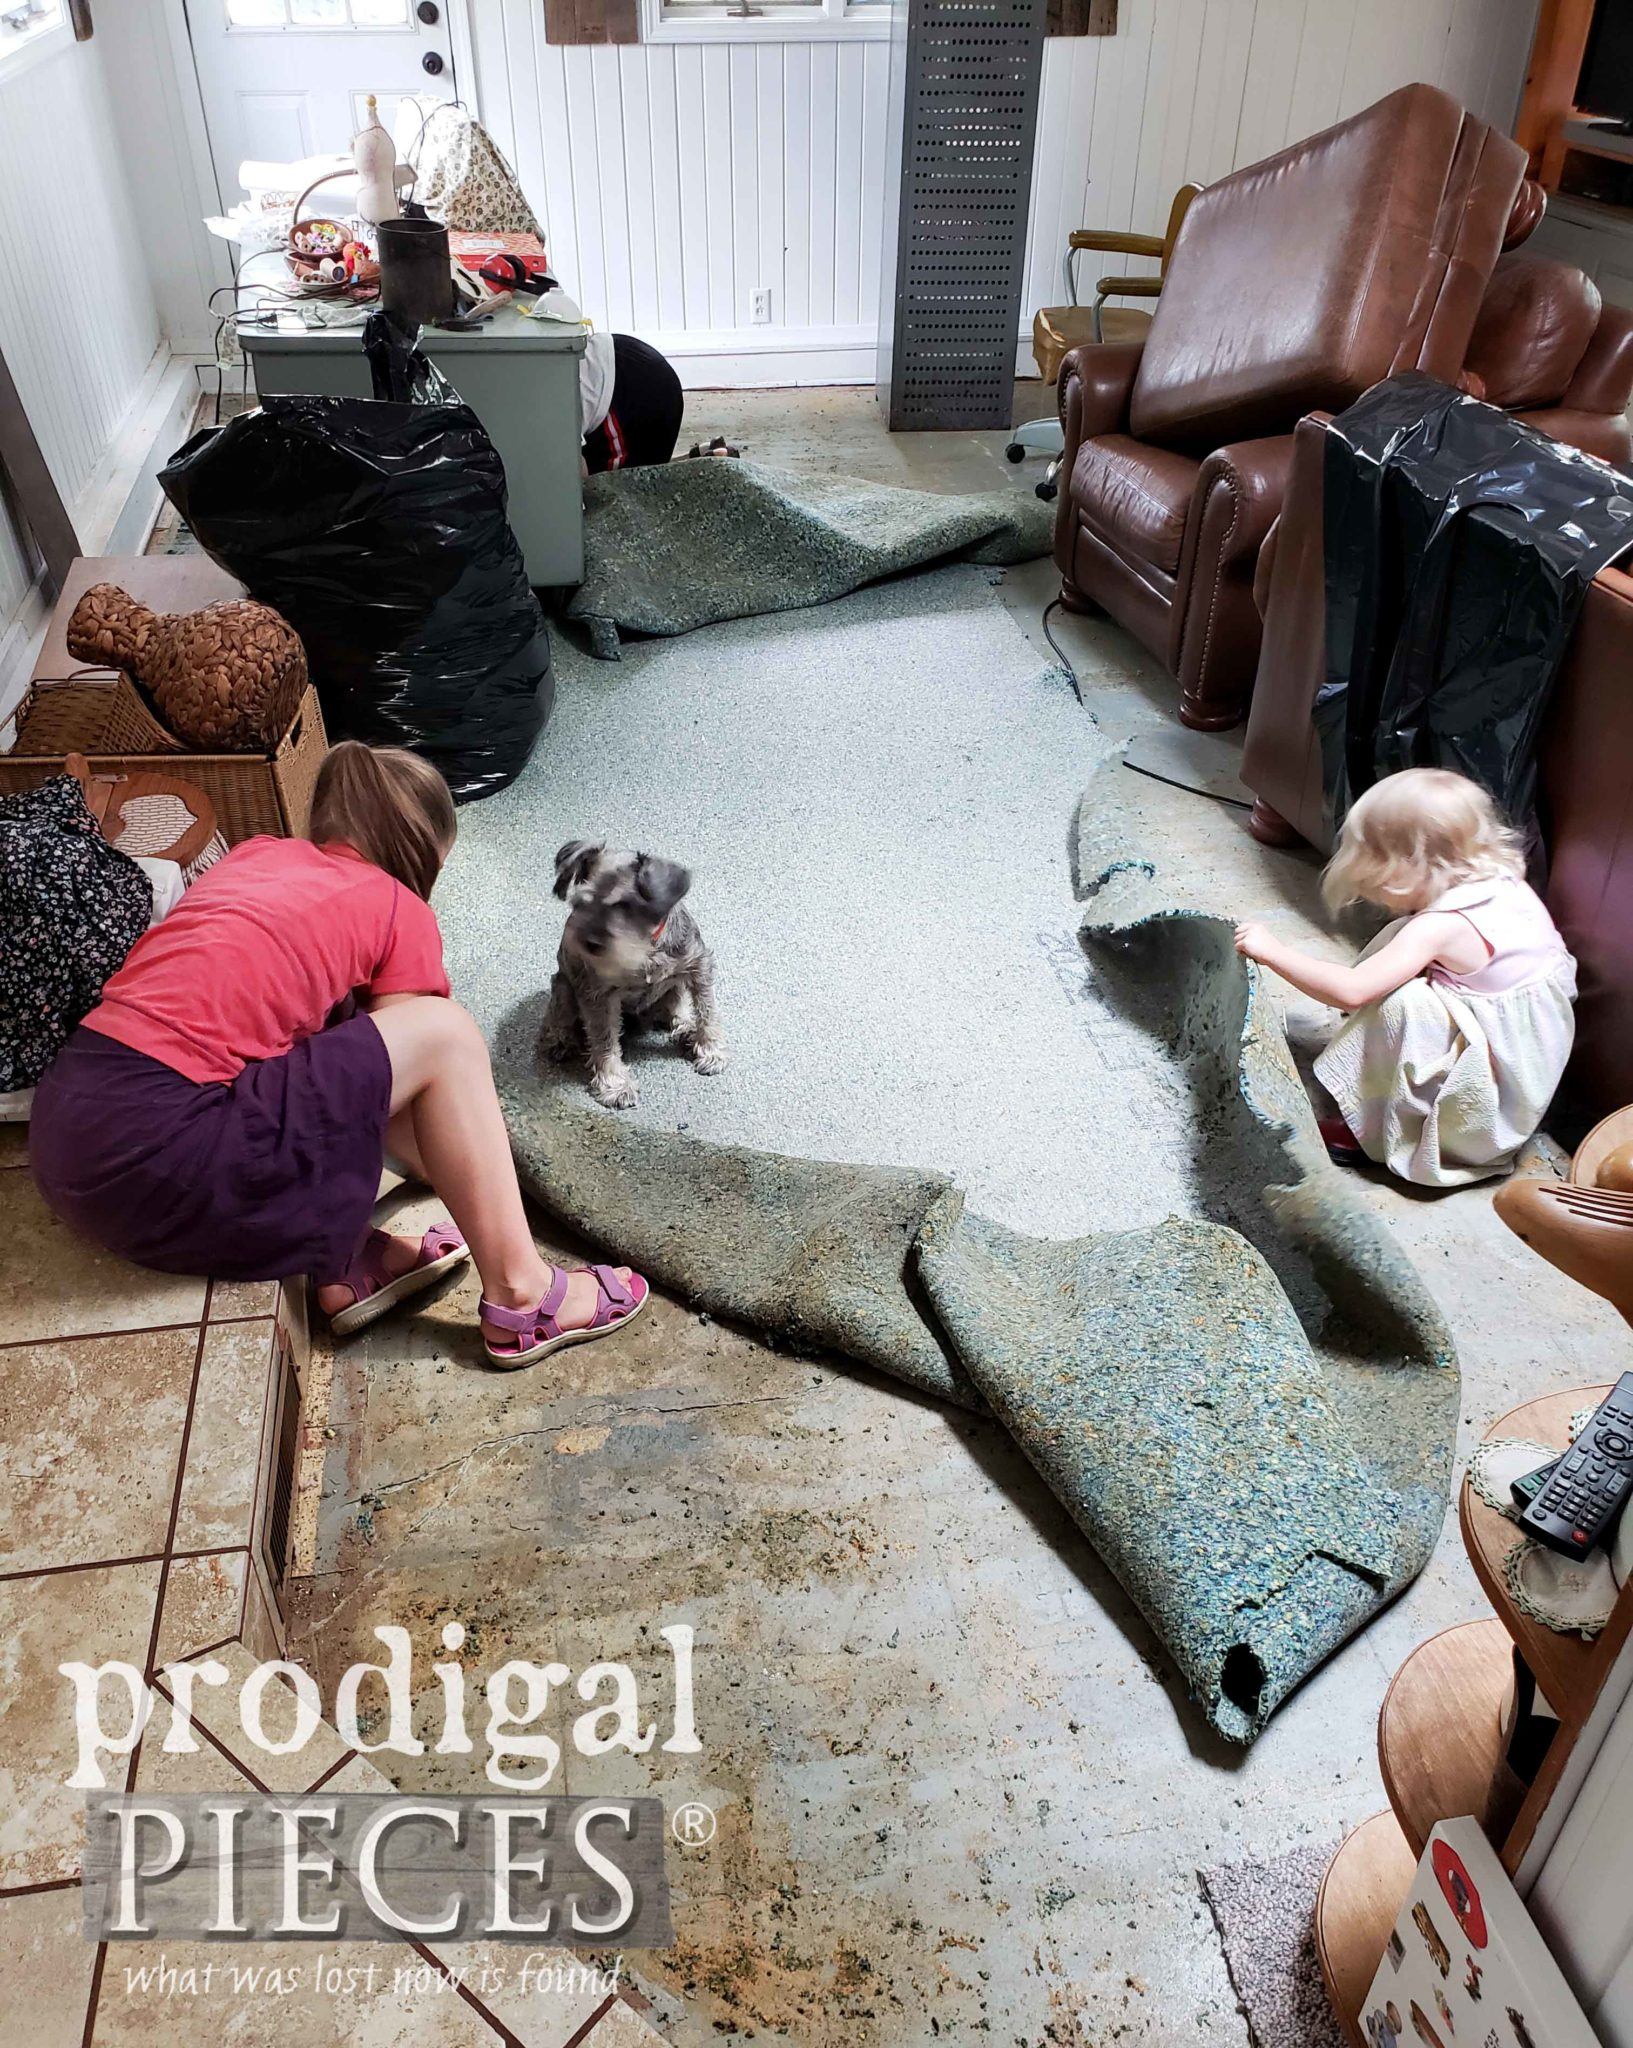 Carpet Padding Removal by Family of Prodigal Pieces | prodigalpieces.com